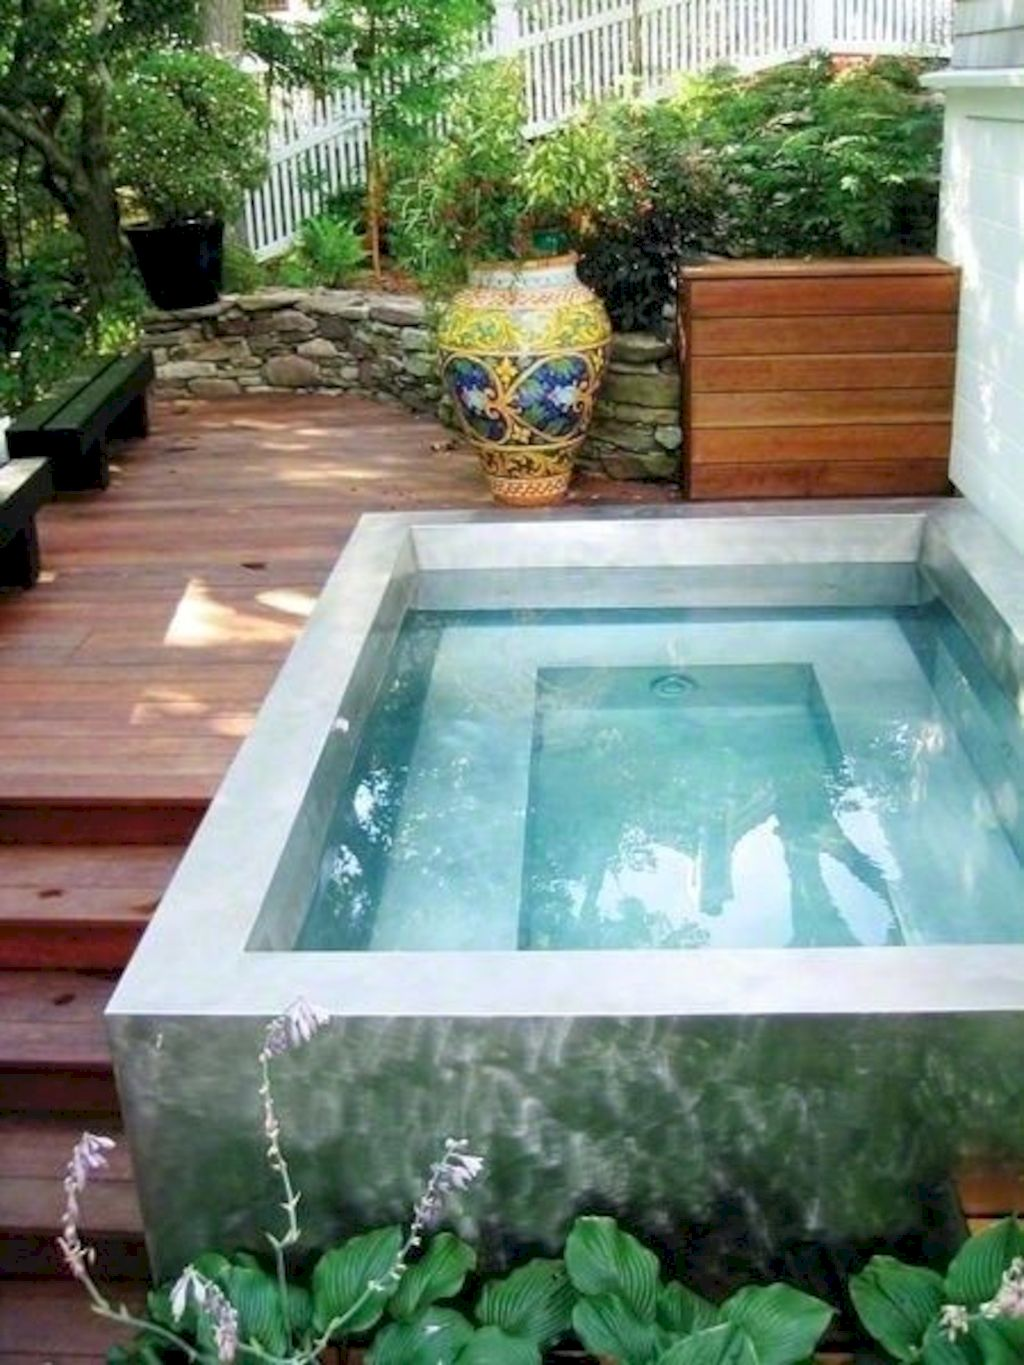 Affordable rectangular pool designs built in small areas that give a lavish look getting along with beautiful landscape (27)